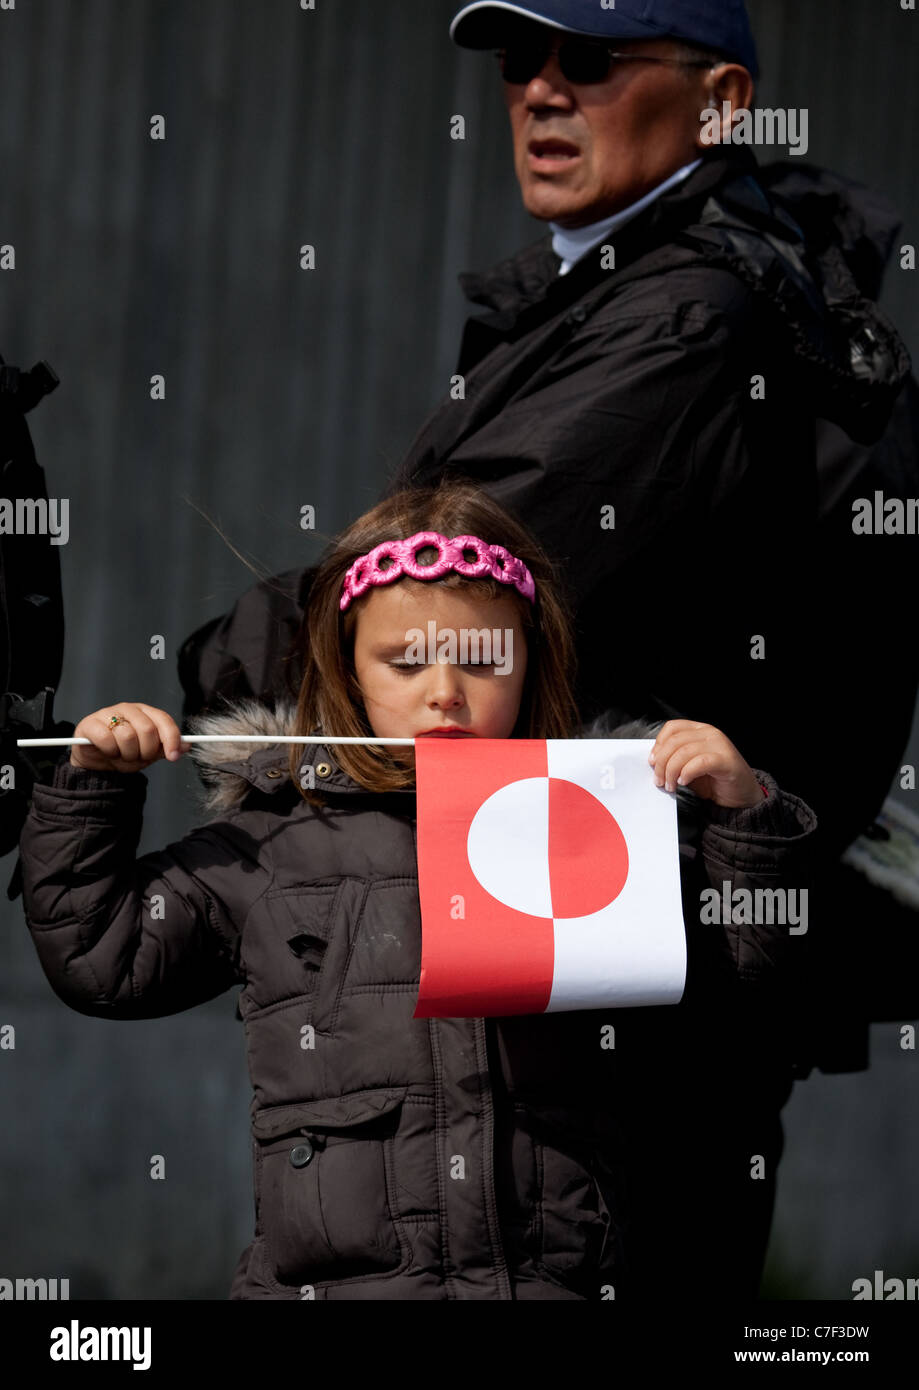 Little girl holding Greenland flag, National Day, celebrating Self-government, Nuuk, Greenland. - Stock Image